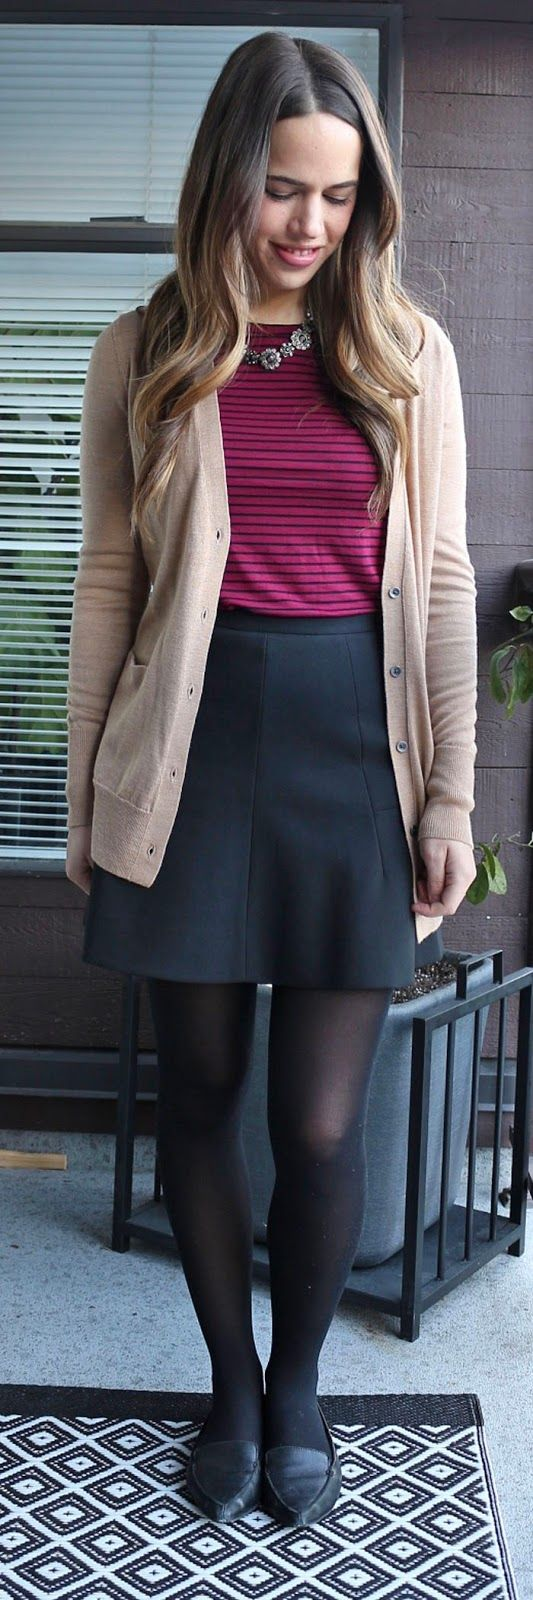 business casual teacher teaching outfit | Jules in Flats -- Gap Merino Cardigan, Old Navy Crew Neck Layering Tee, J.Crew Skirt""